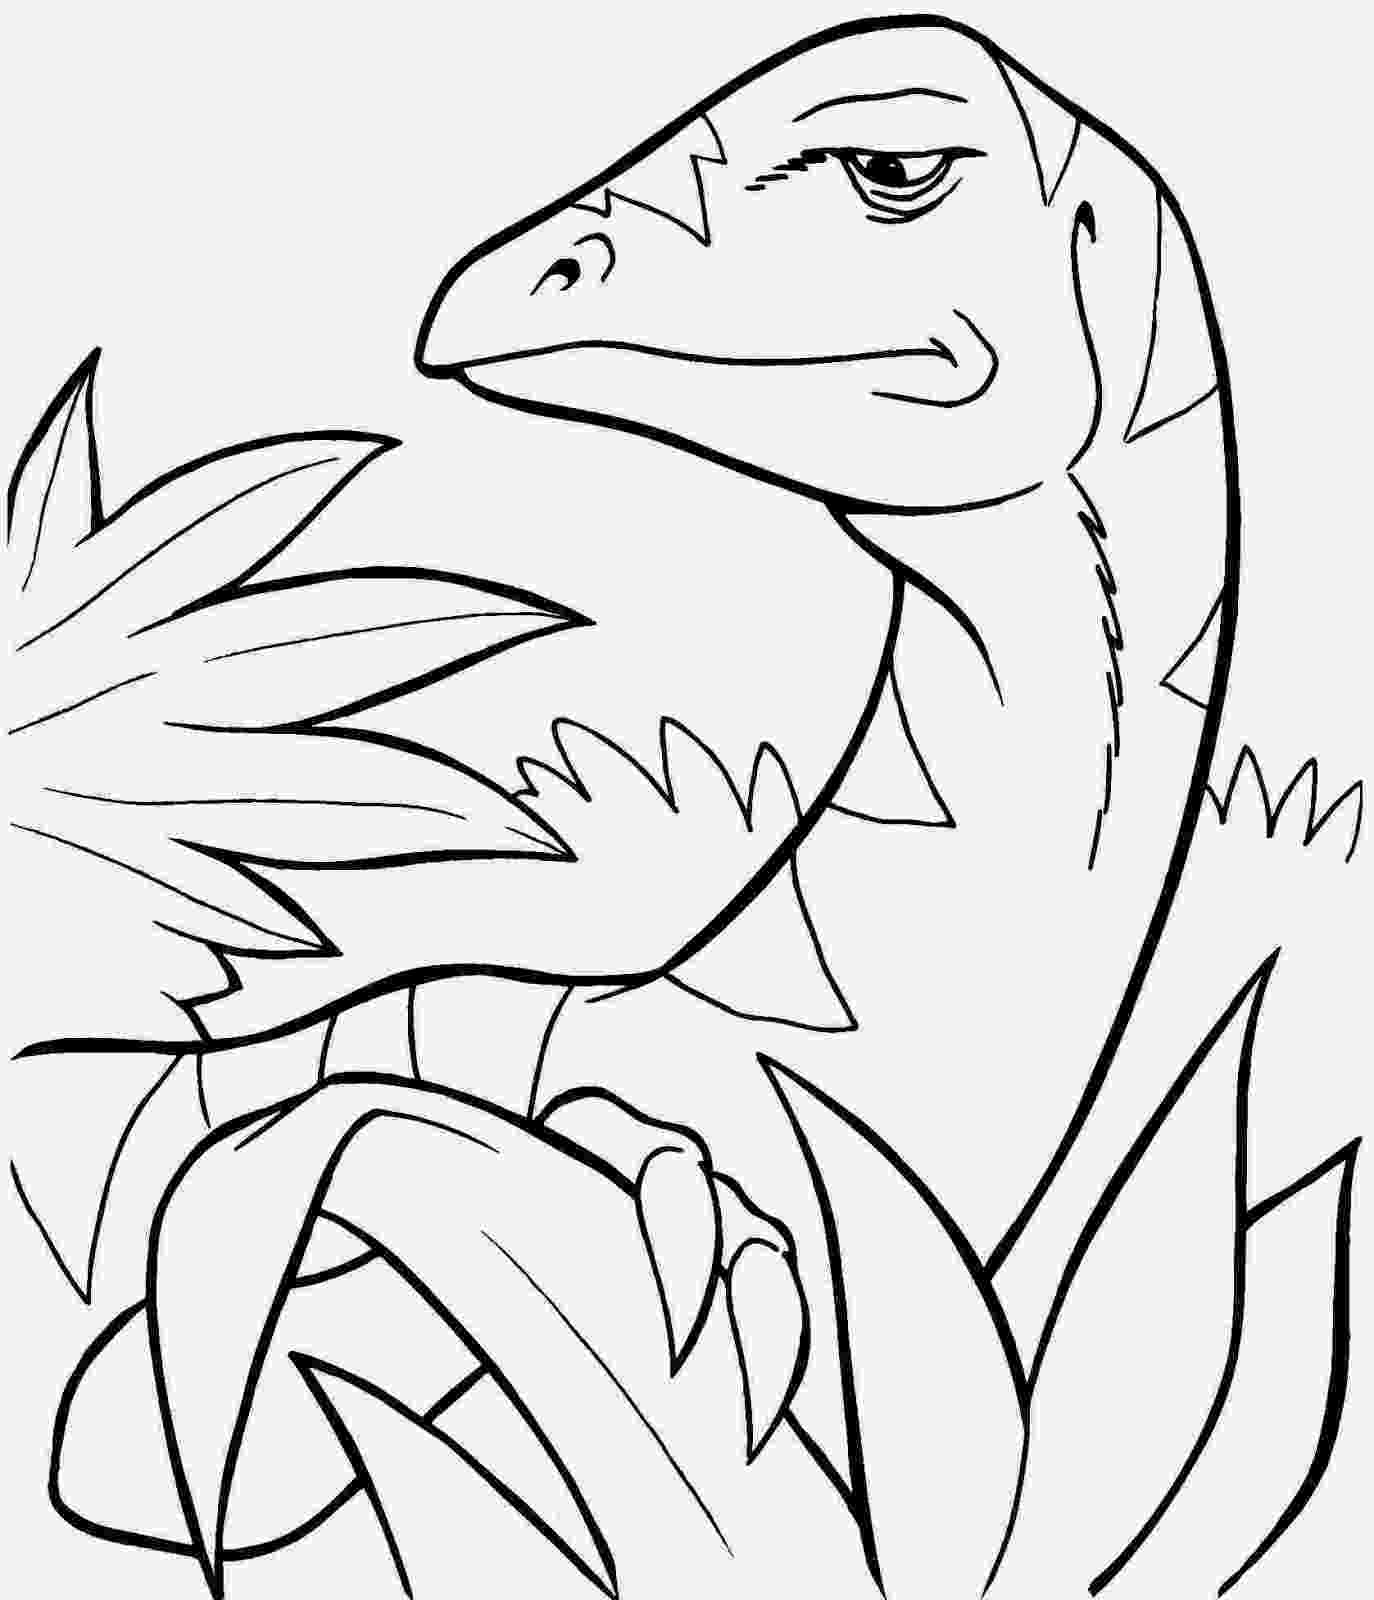 dinosaur pictures to color and print free printable dinosaur coloring pages for kids to color dinosaur and pictures print